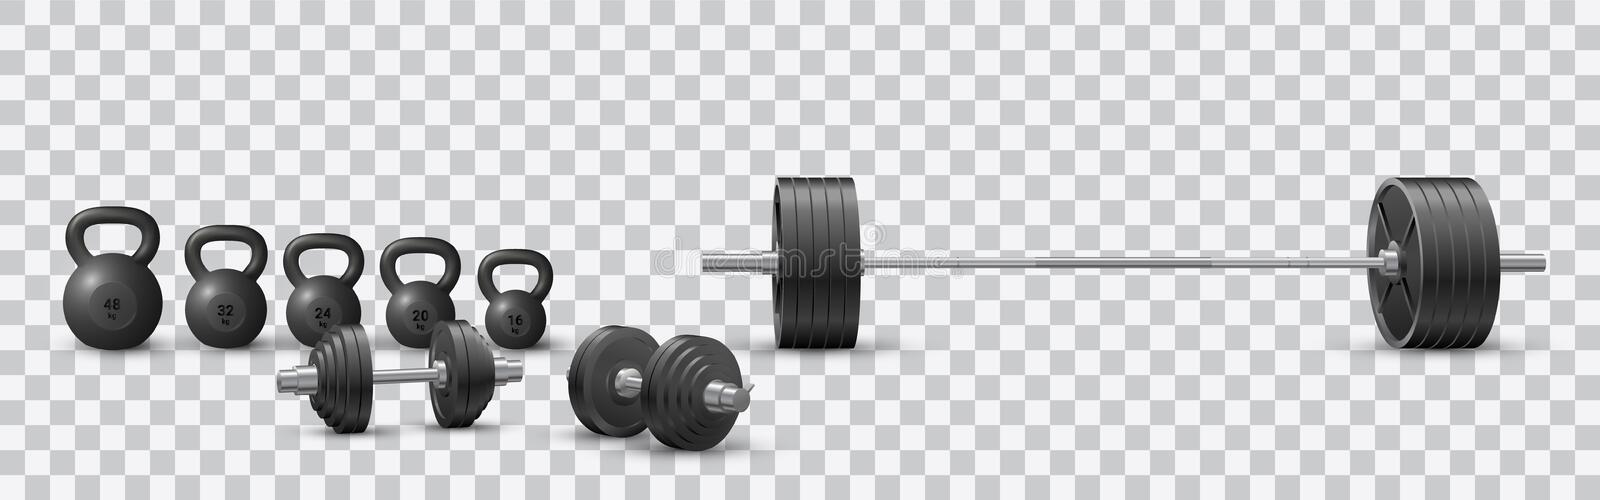 Beautiful realistic fitness vector of an olympic barbell, black iron dumbbels and a set of kettlebells on transparent background royalty free illustration